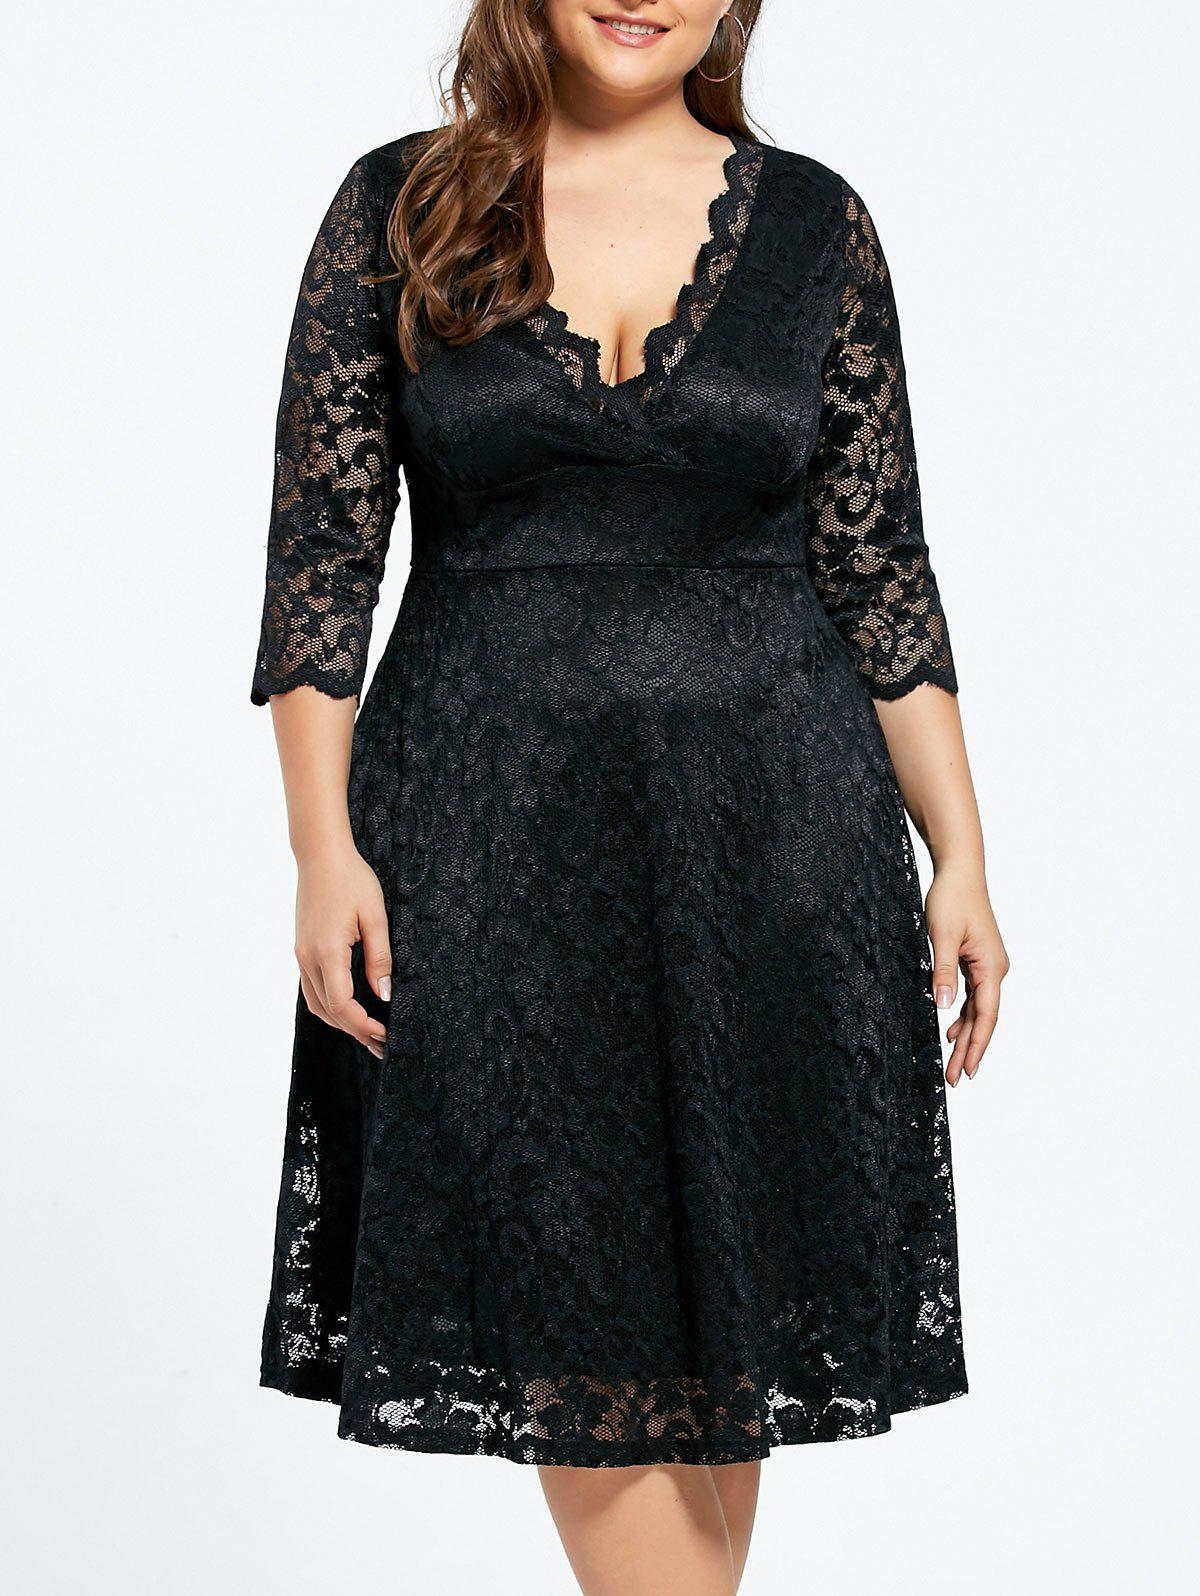 Plus Size Lace Maid of Honor DressWOMEN<br><br>Size: 3XL; Color: BLACK; Style: Cute; Material: Polyester; Silhouette: Straight; Dresses Length: Knee-Length; Neckline: V-Neck; Sleeve Length: 3/4 Length Sleeves; Embellishment: Lace; Pattern Type: Solid; With Belt: No; Season: Fall,Spring; Weight: 0.4400kg; Package Contents: 1 x Dress;